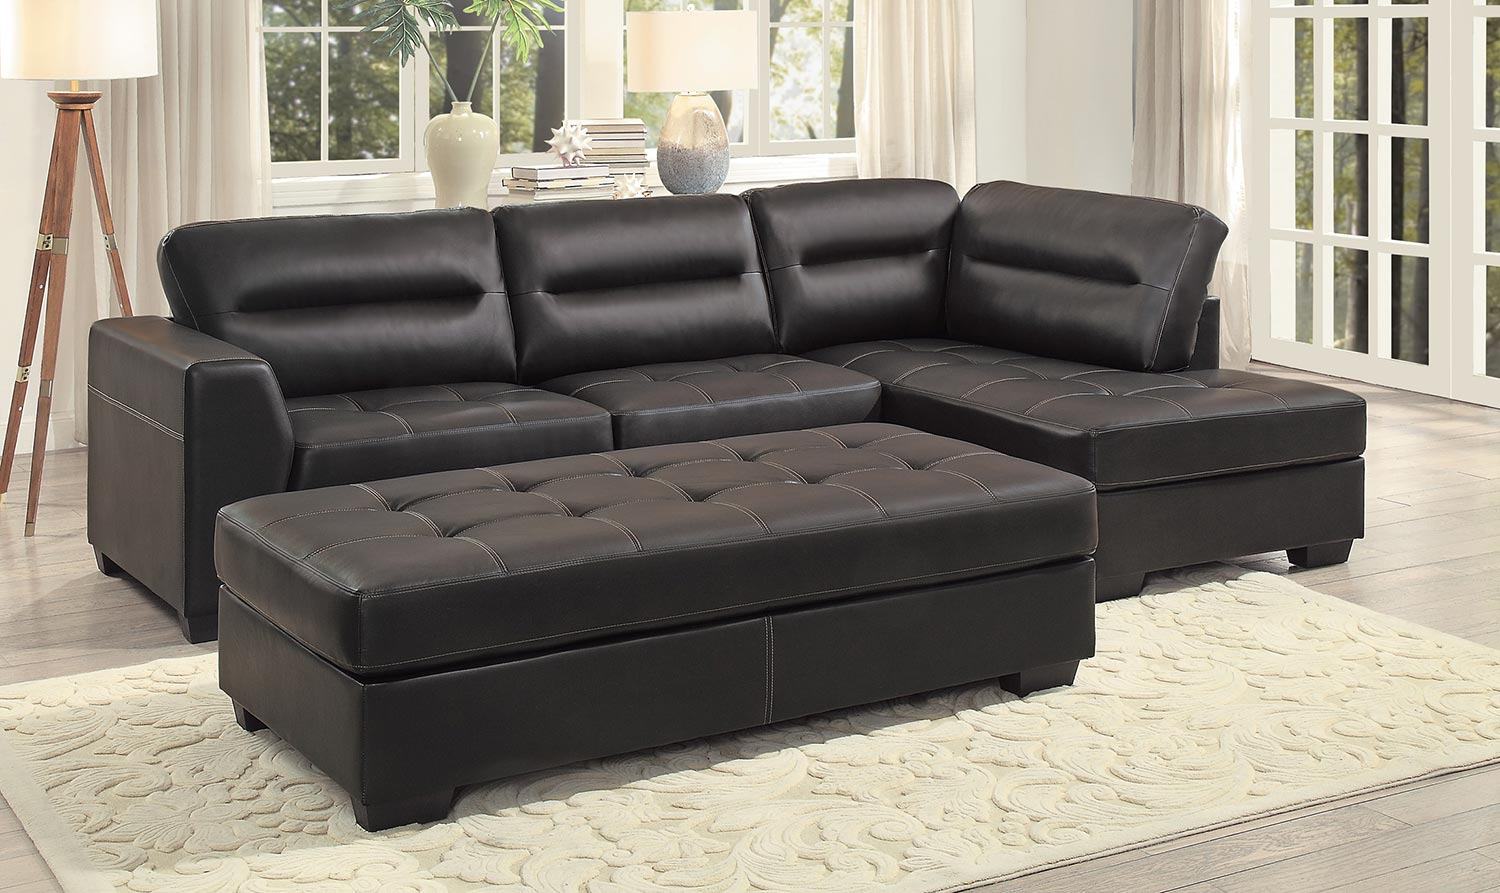 Homelegance Terza Sectional Sofa Set - Dark Brown AirHyde